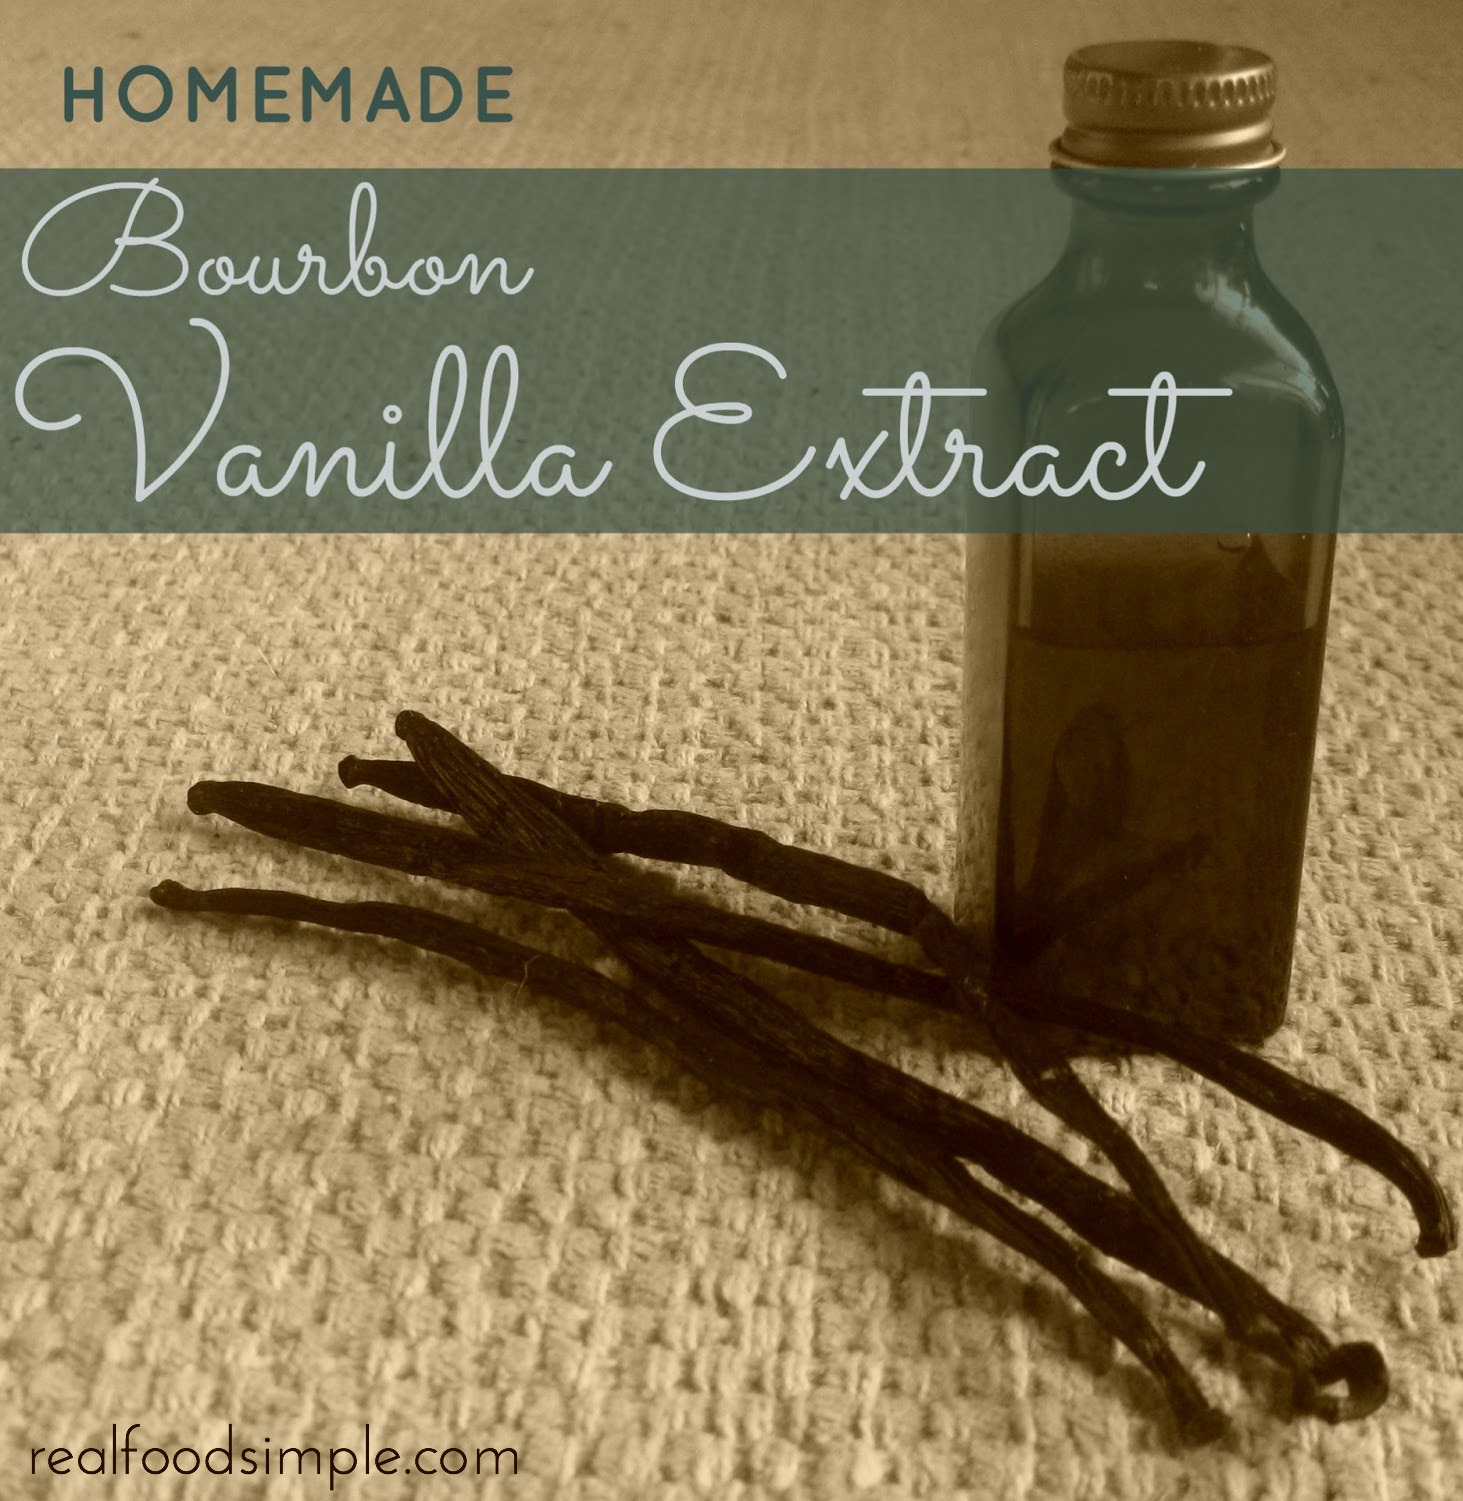 homemade bourbon vanilla extract | realfoodsimple.com